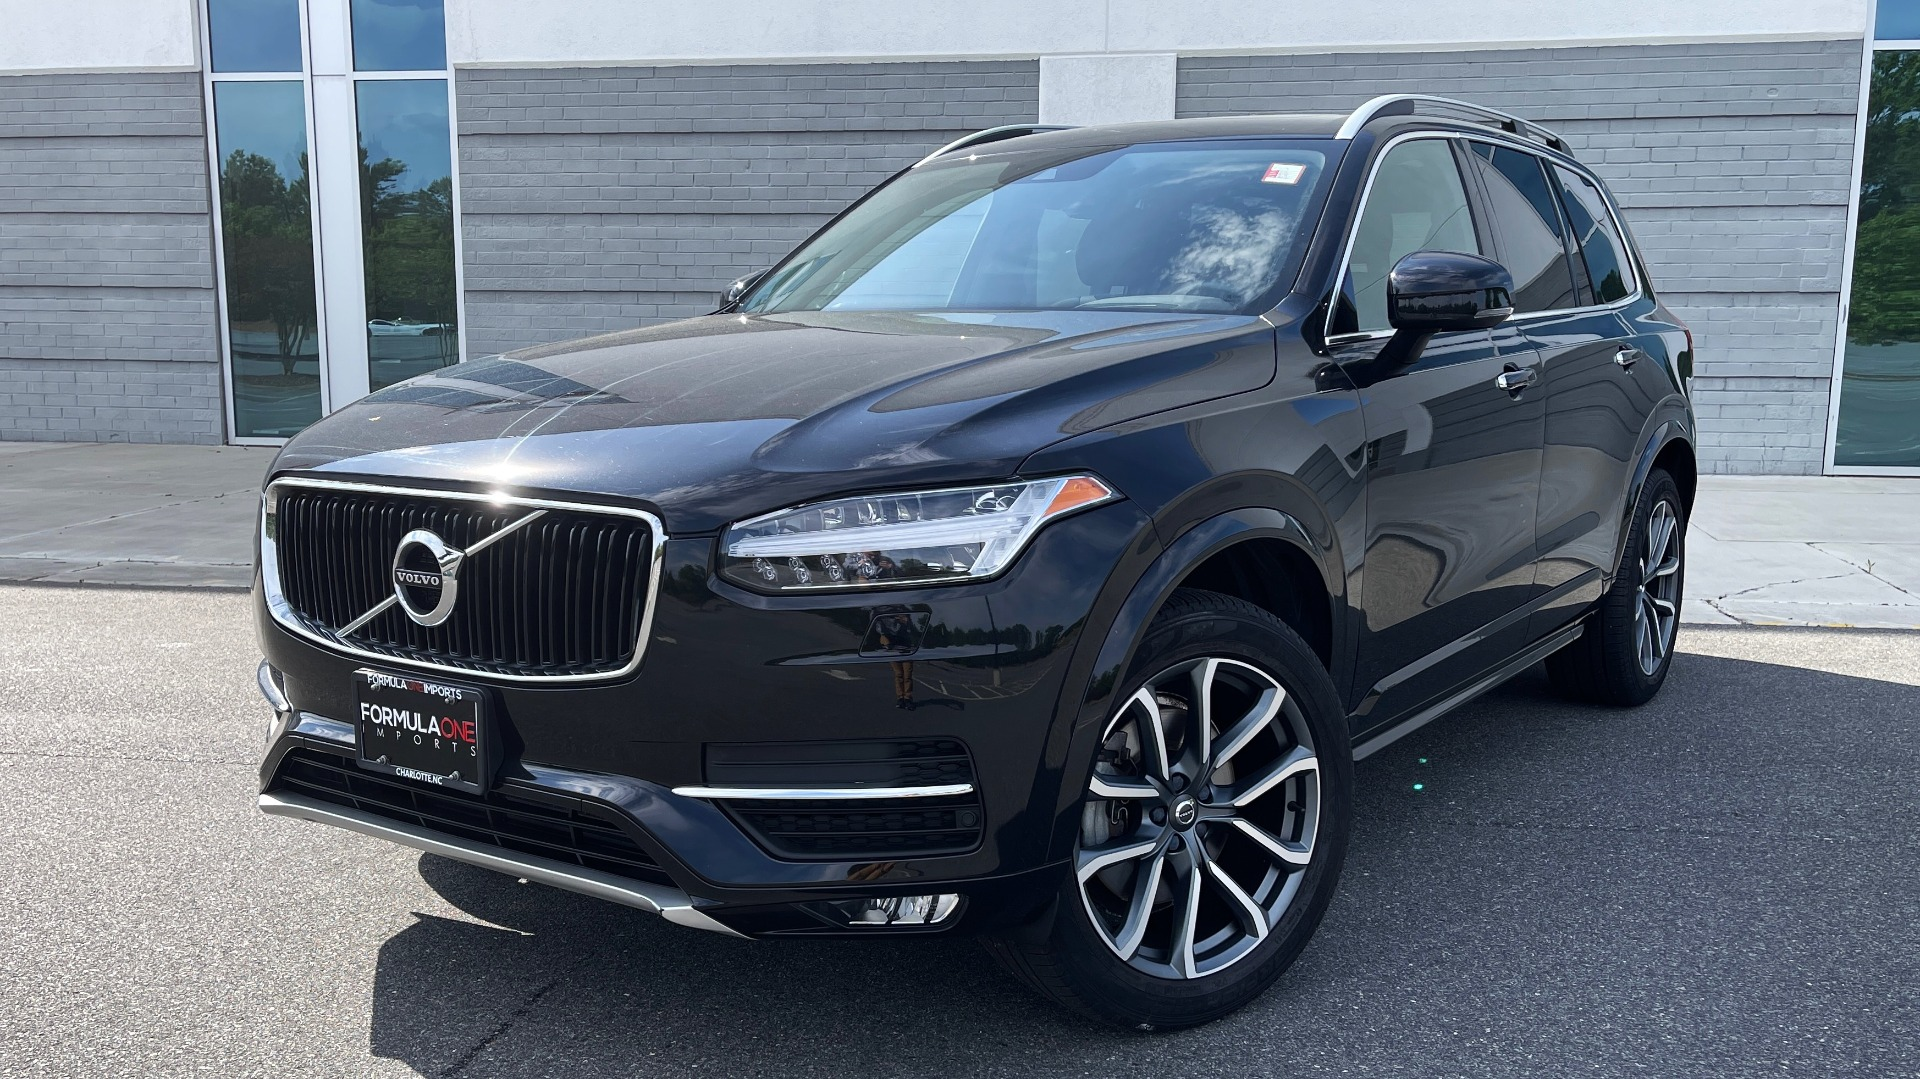 Used 2018 Volvo XC90 T5 AWD MOMENTUM PLUS / NAV / SUNROOF / 3-ROW / REARVIEW for sale $40,295 at Formula Imports in Charlotte NC 28227 1